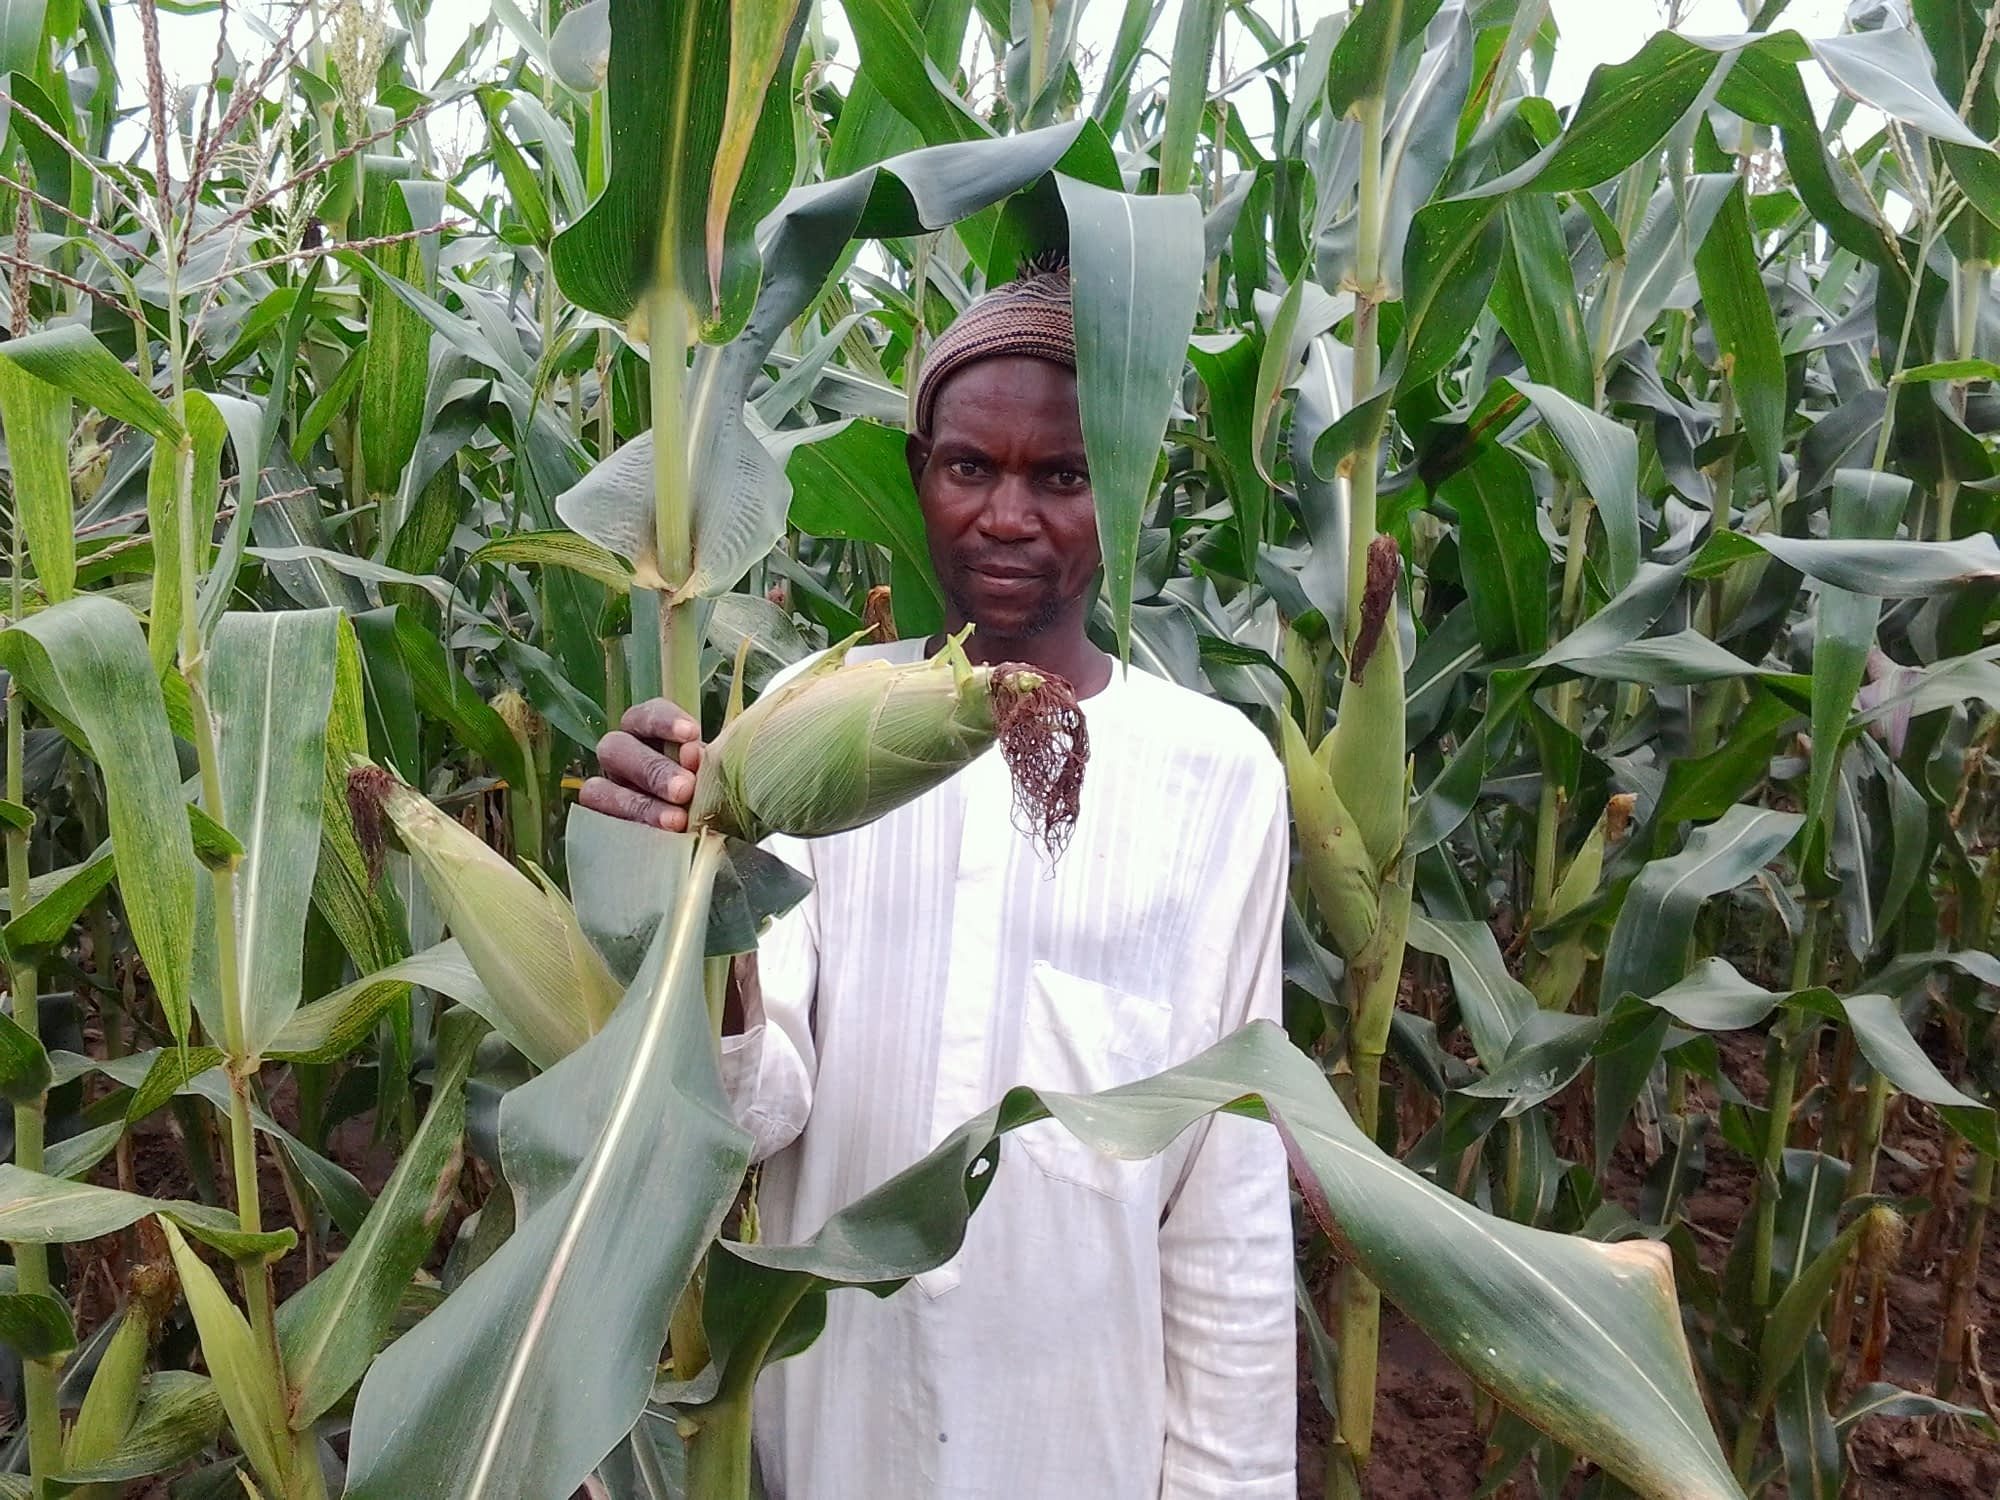 A farmer shows maize growing in his field, in one of the communities in northern Nigeria which participated in the study. (Photo: Oyakhilomen Oyinbo)